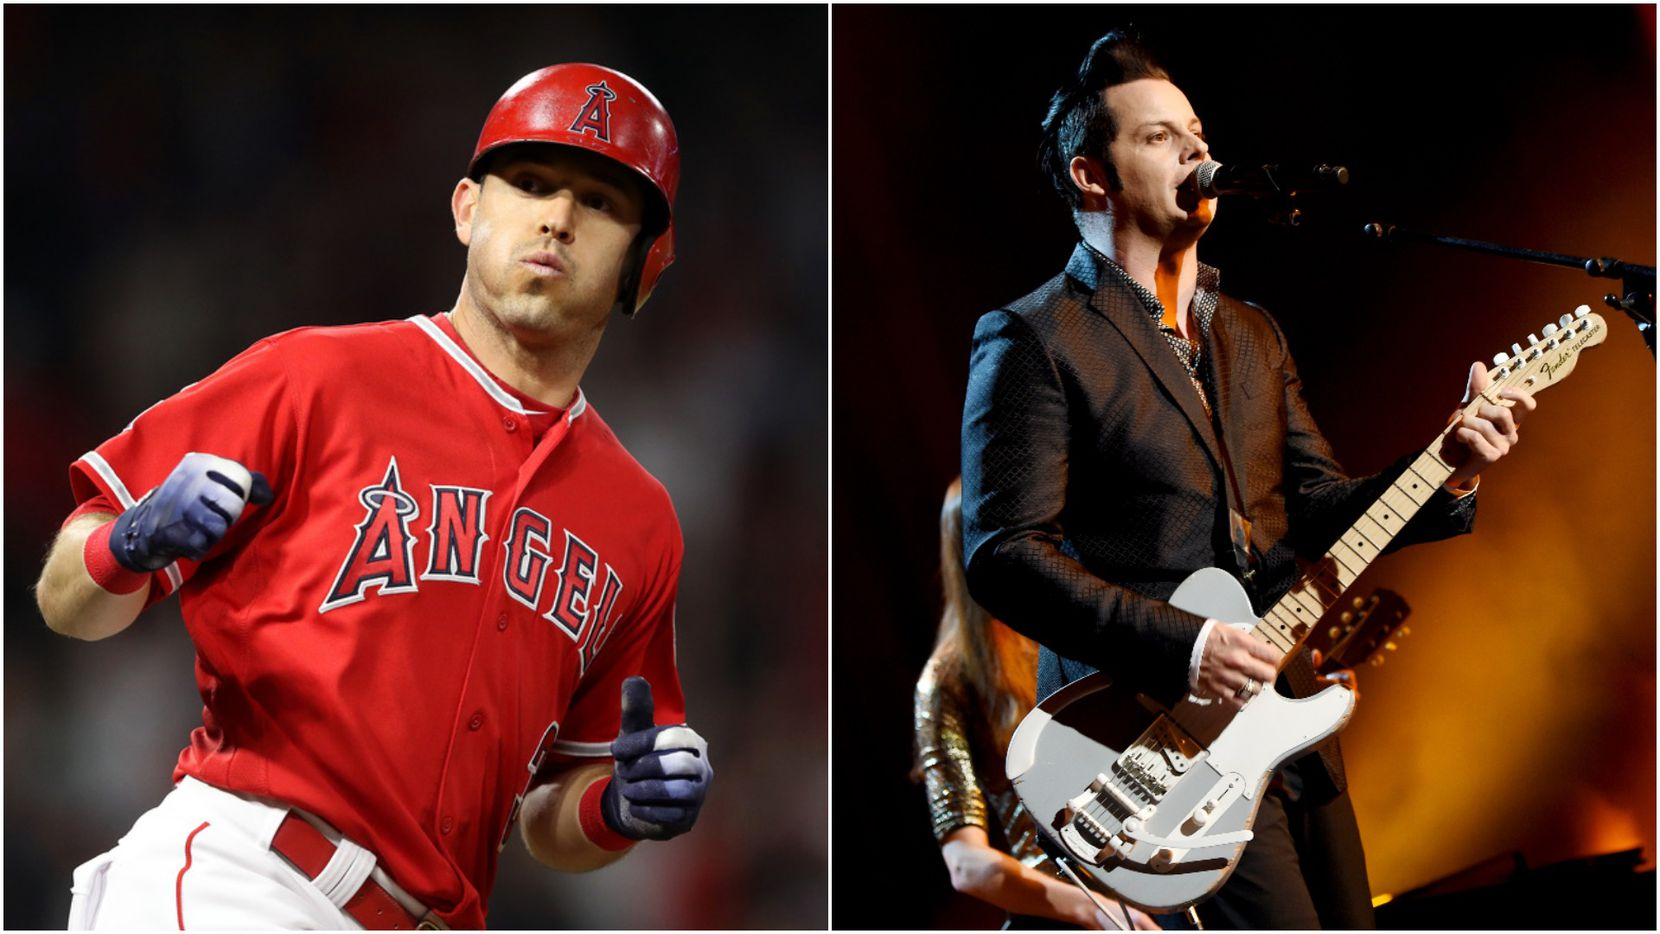 Baseball player Ian Kinsler (left) and musician Jack White (right) are partners in Warstic bat design and manufacturing company.